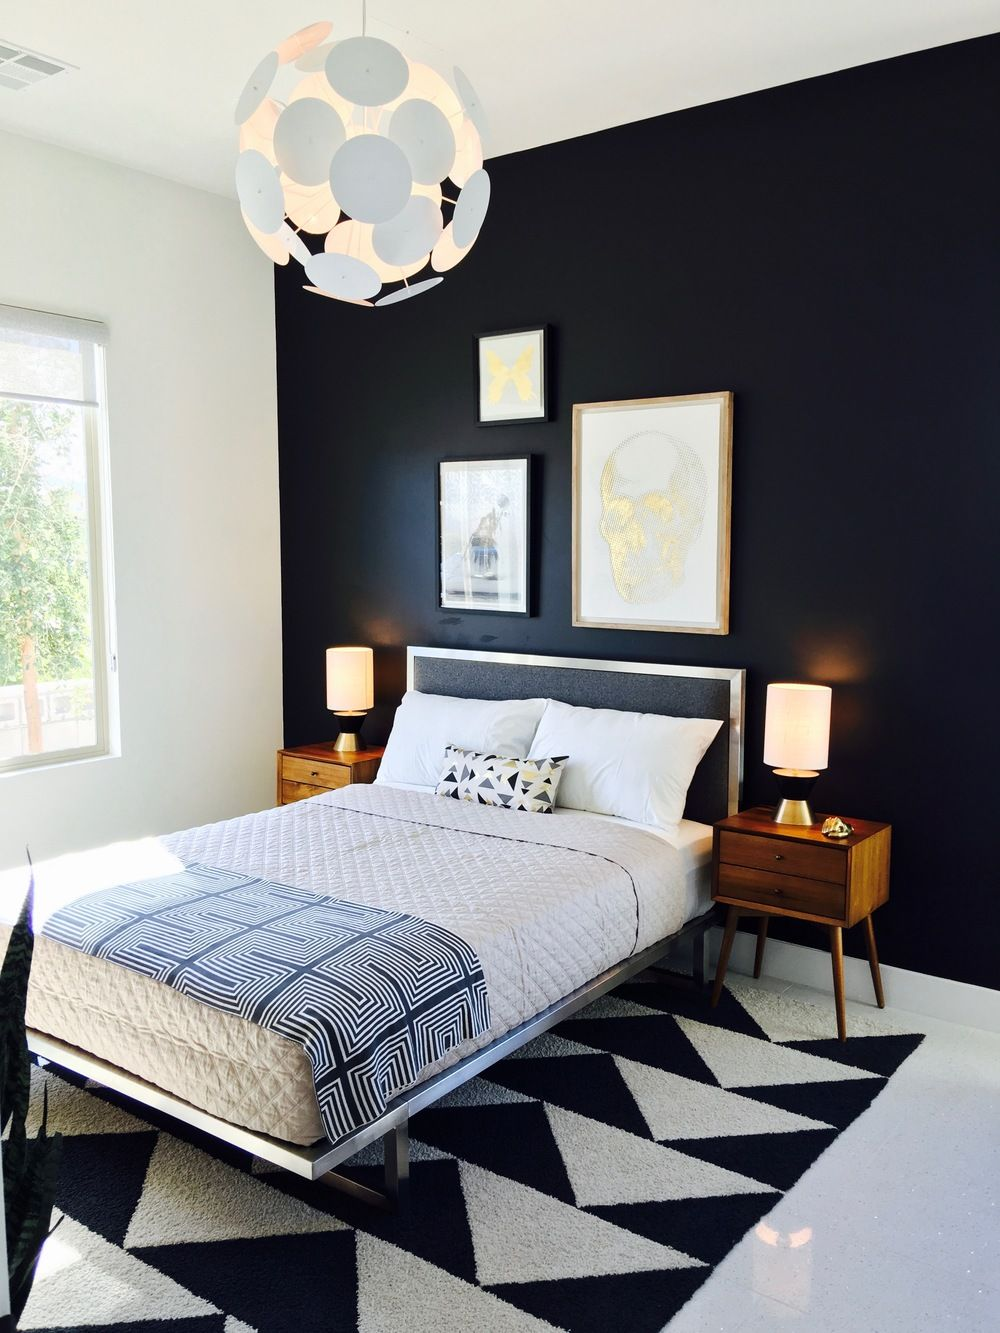 modern bedroom. mid-century bedroom. black and white bedroom. flor